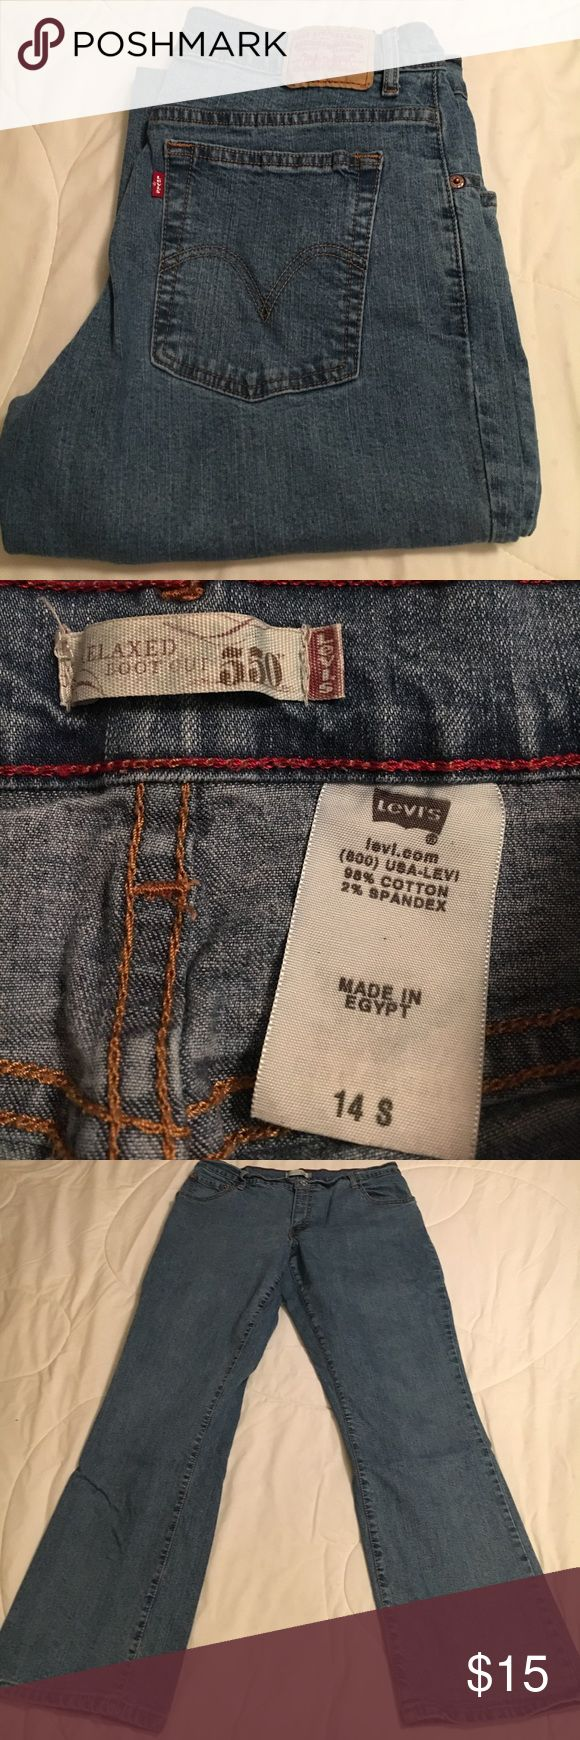 """Levis 550 Relaxed Bootcut Jean Levis 550 Relaxed Bootcut Jean with Approx 29"""" Inseam Levi's Jeans Boot Cut"""